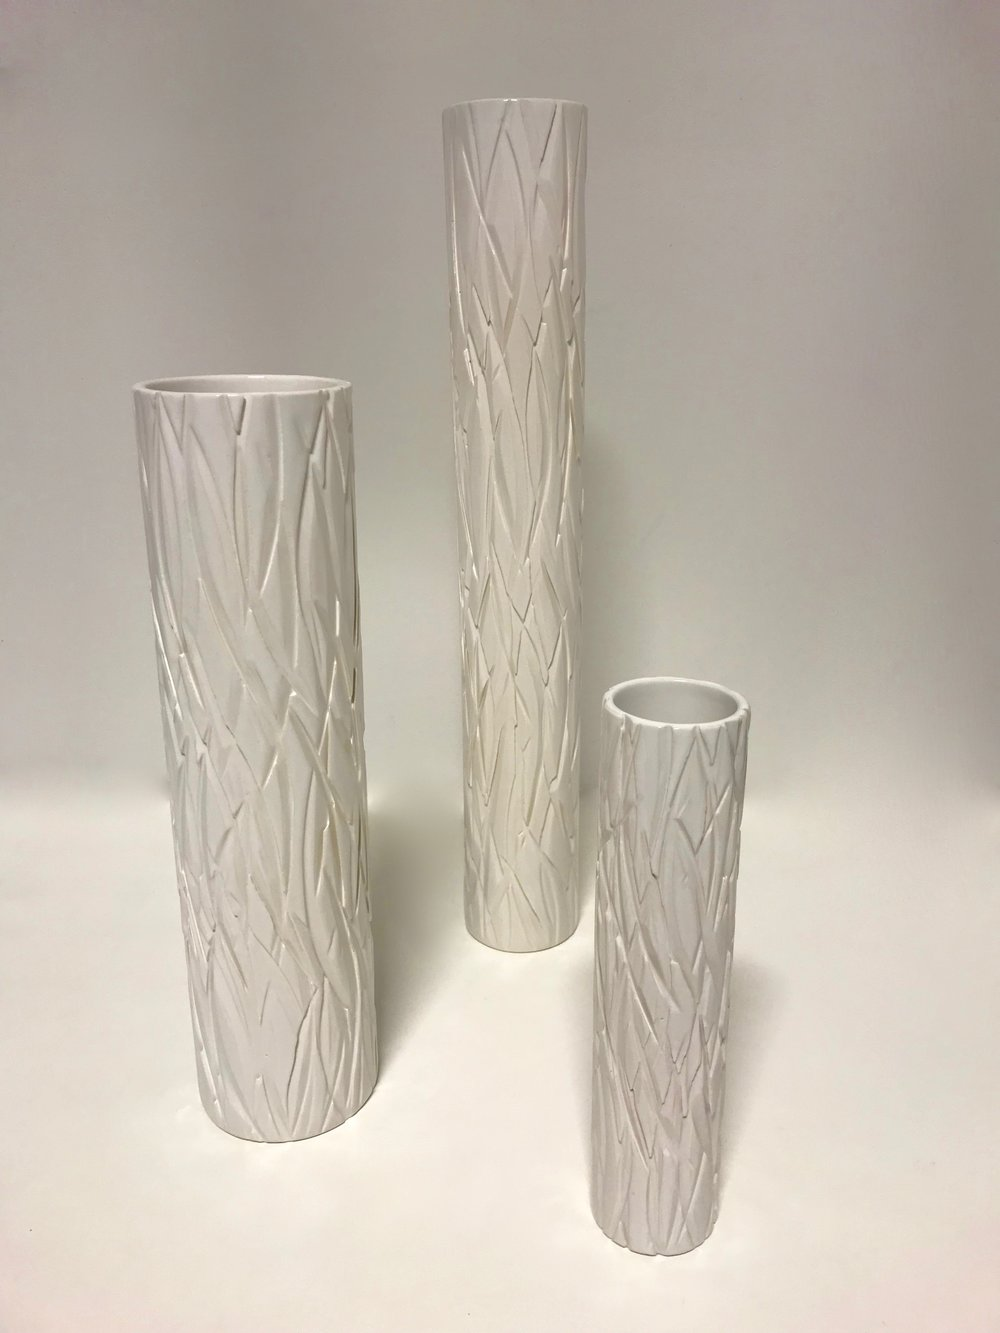 Cut Vases are high fired porcelain ceramic cylinders with a deeply carved surface texture that is applied by using a large industrial saw.  Materials: Ceramic  Dimensions: Tall Vase – 500mm tall x 80mm diameter (approx)  $269  Large Vase – 400mm tall x 100mm diameter (approx) $269  Small Vase – 250mm tall x 60mm diameter (approx)   $149